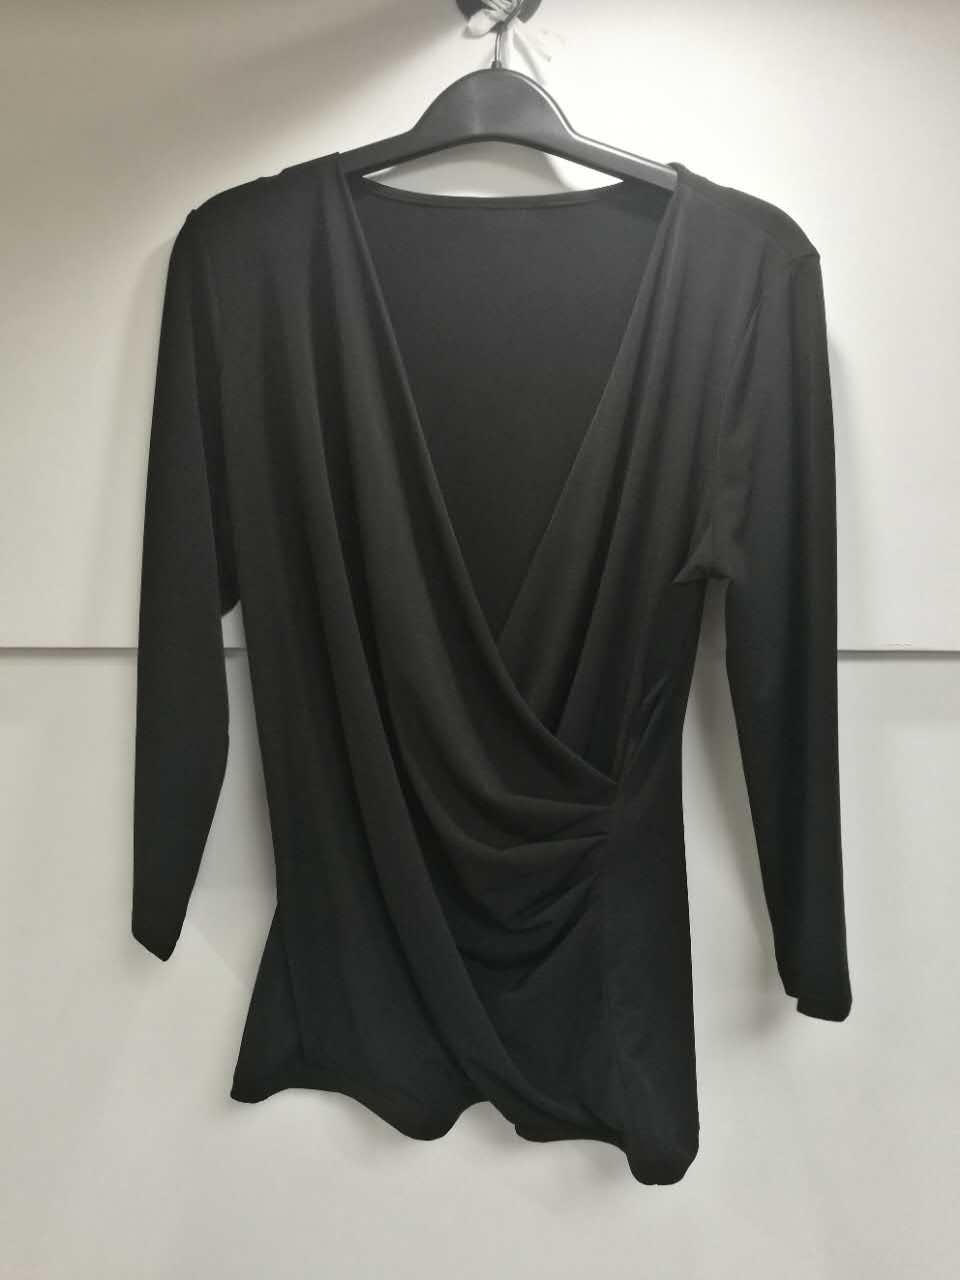 New Women 3/4 sleeve draped knited Tops